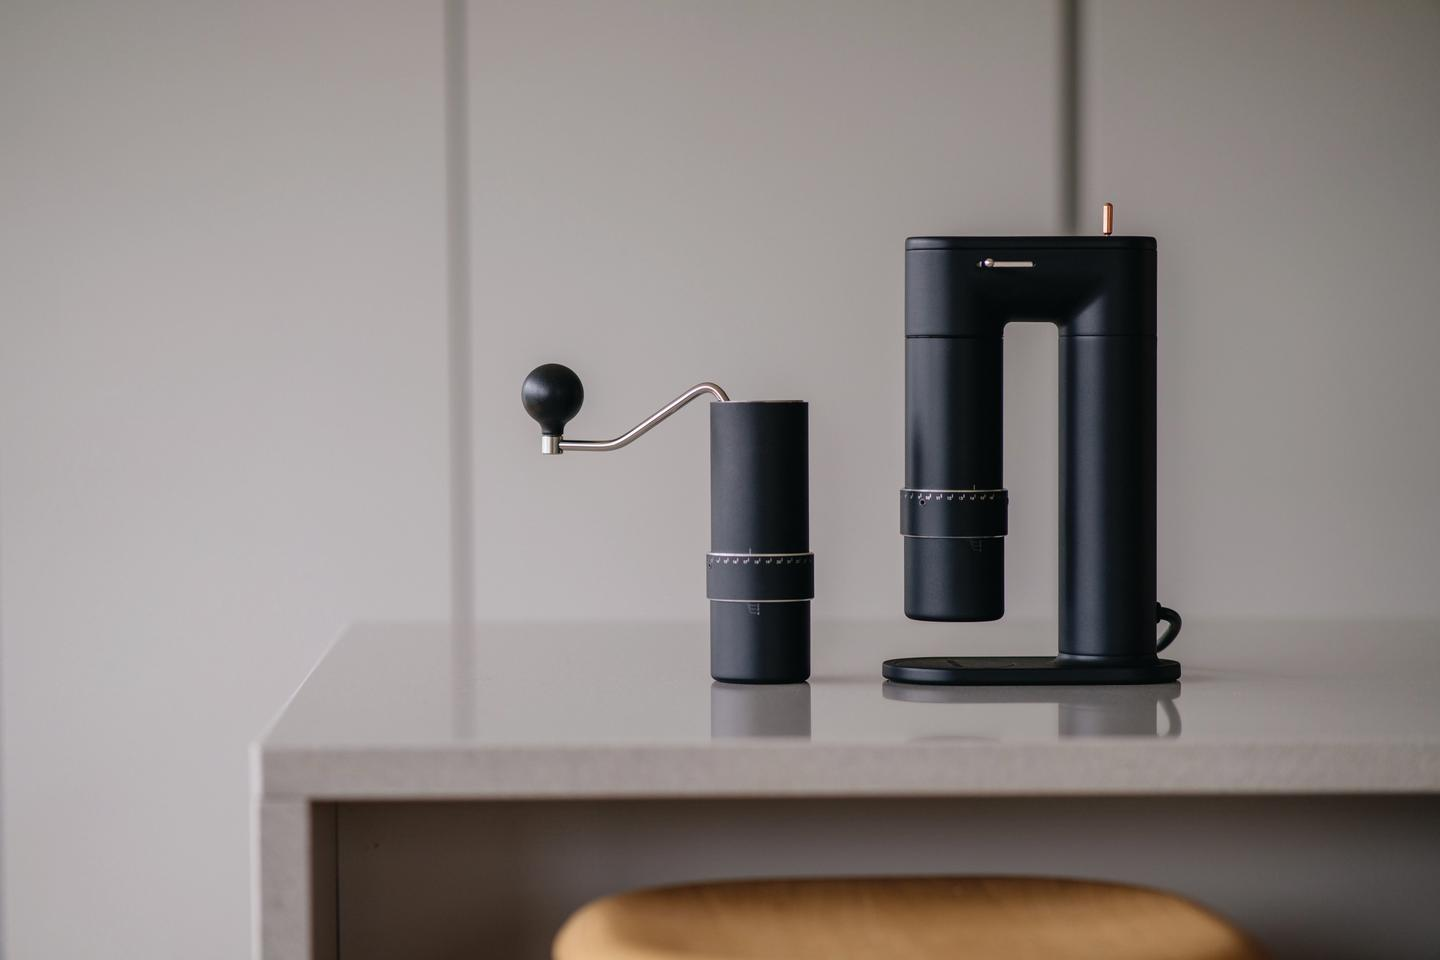 Goat Story's Arco grinder looks to blend the performance and portability of a hand grinder with the ease of an electric grinder